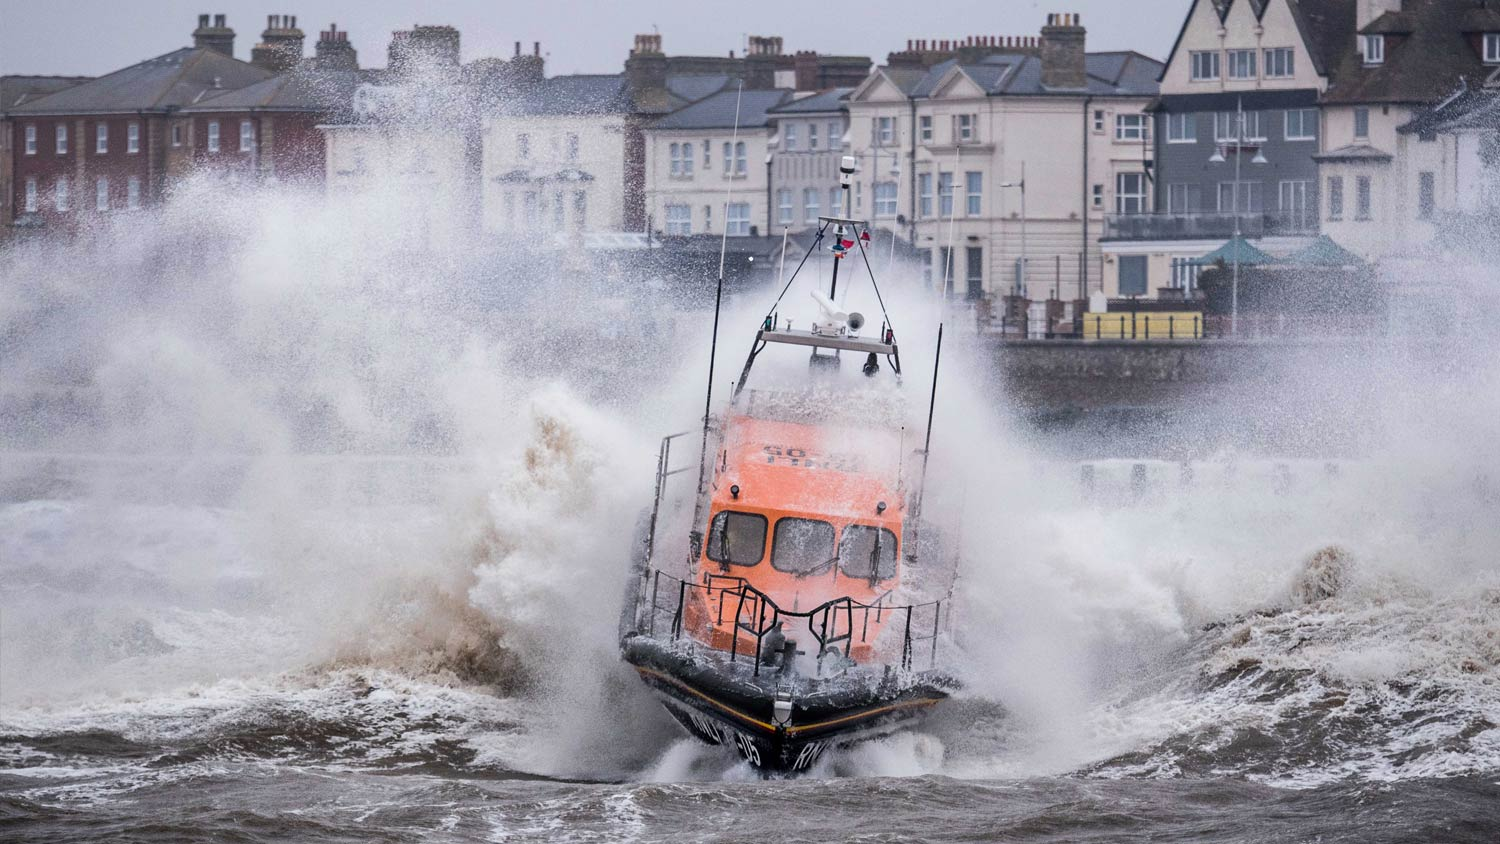 Lowestoft's Shannon lifeboat in rough weather